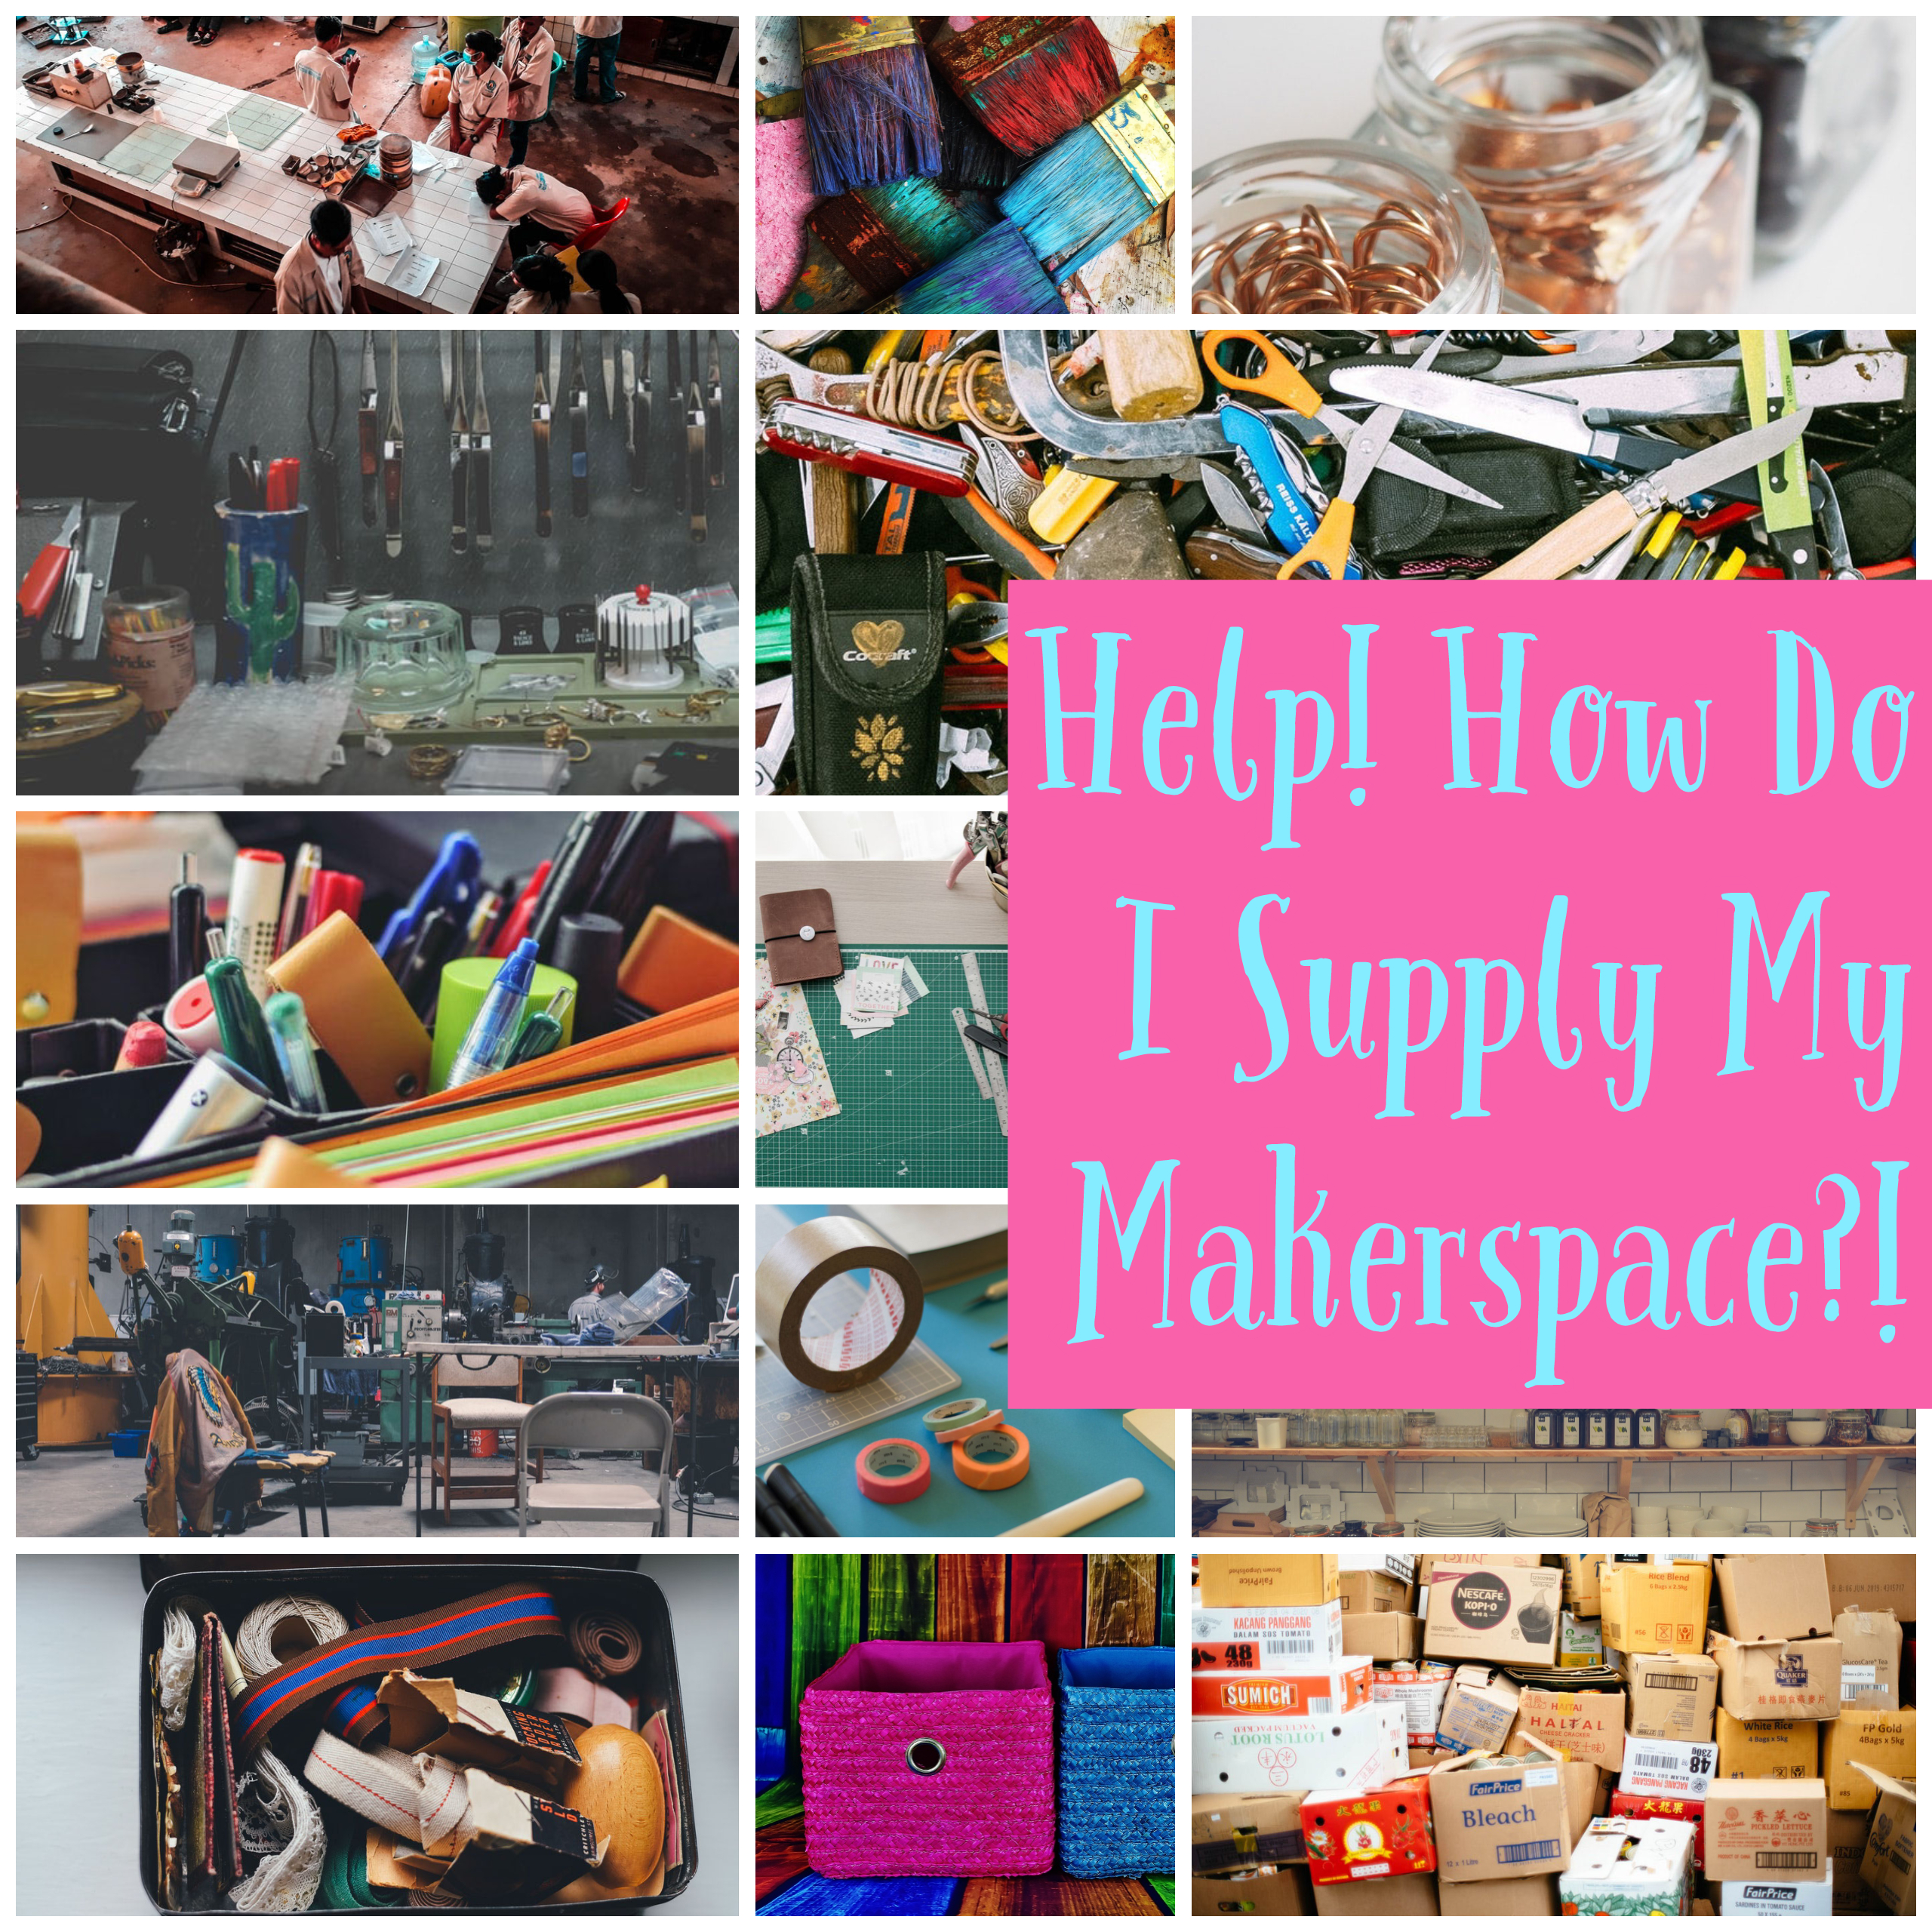 Help! How Do I AFFORDABLY Supply My Classroom Makerspace?!